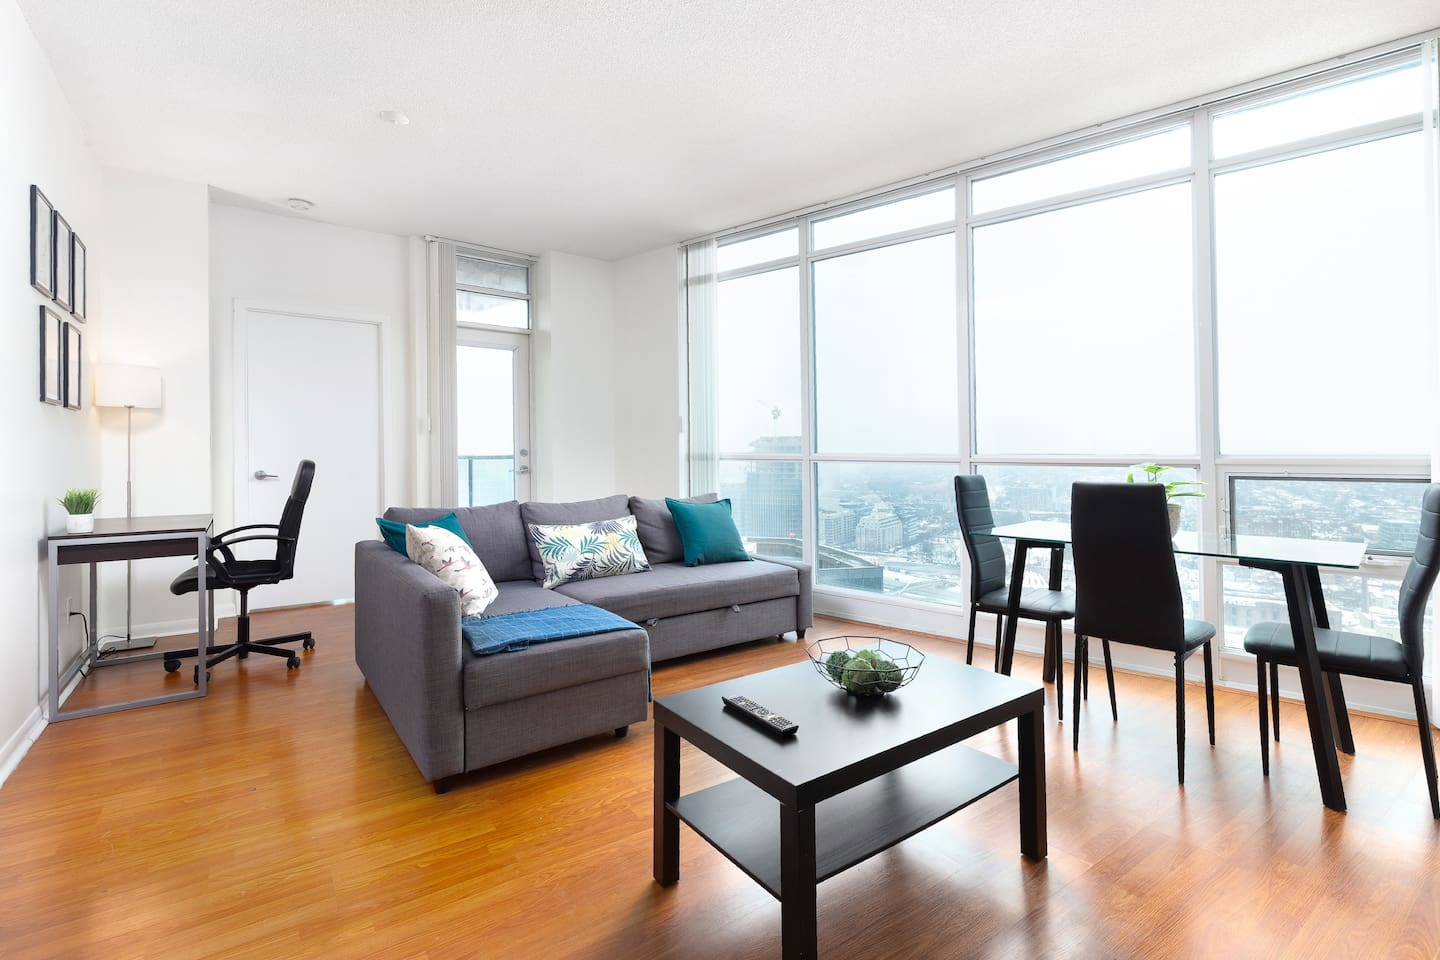 Large living room space that opens up and lets sun light in to enjoy one of the best views Toronto has to offer.